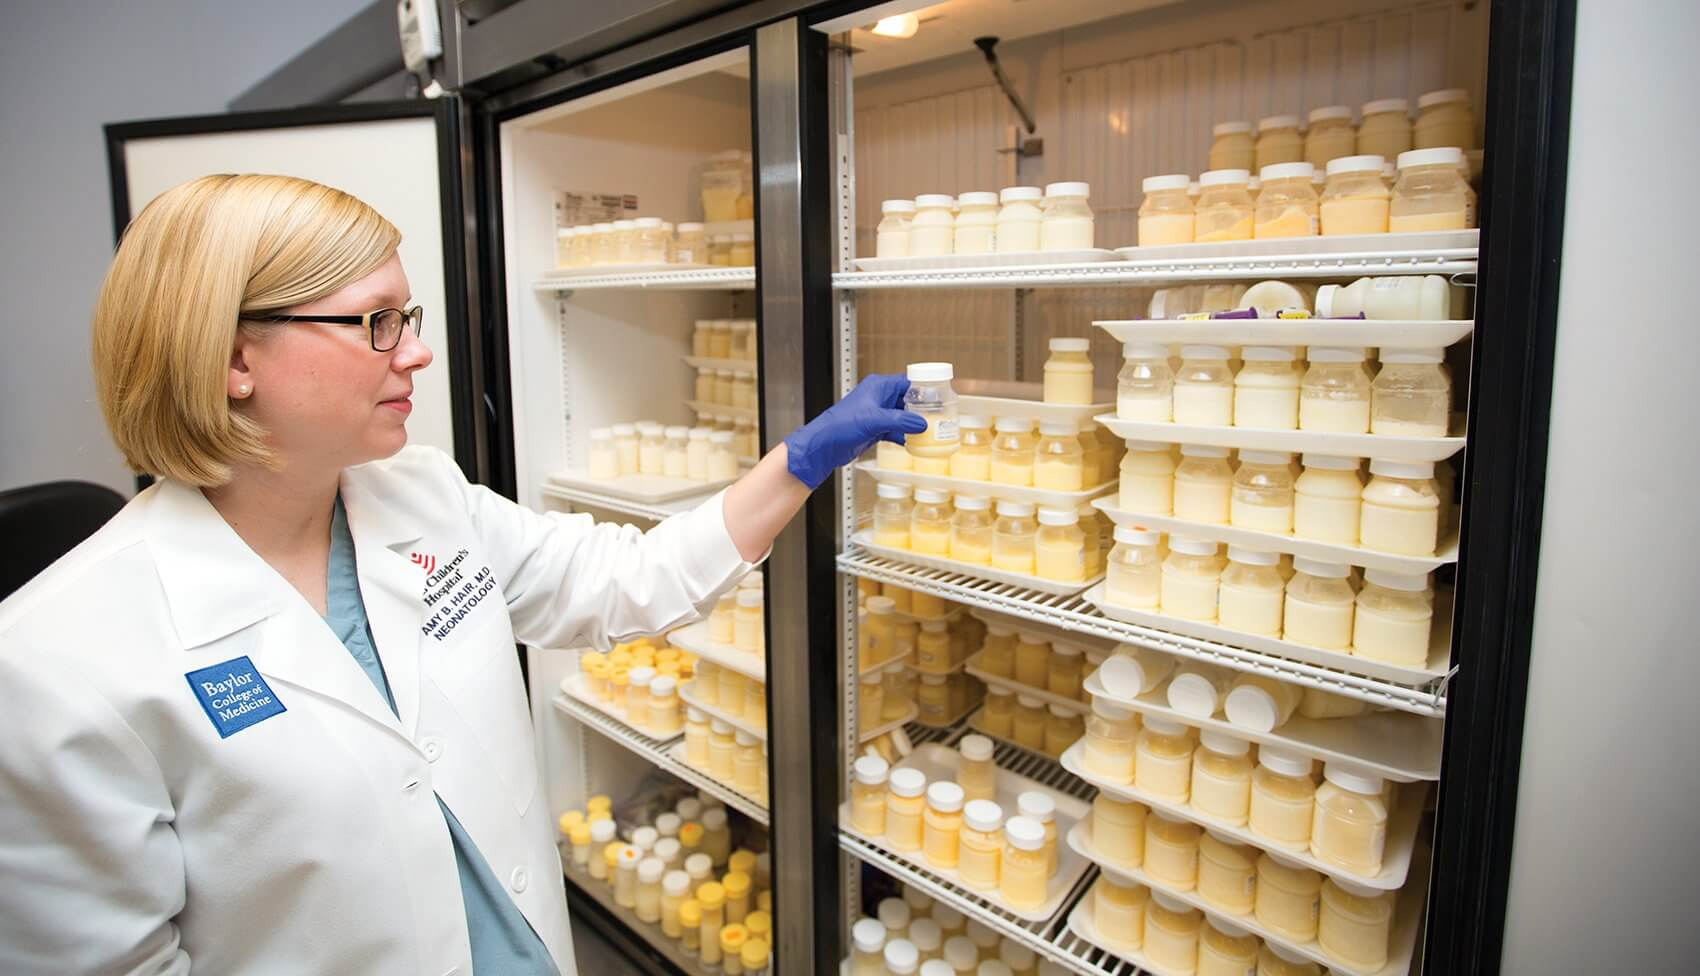 Amy Hair, M.D., neonatologist and director of the Neonatal Nutrition Program at Texas Children's Hospital, pictured inside the milk bank.